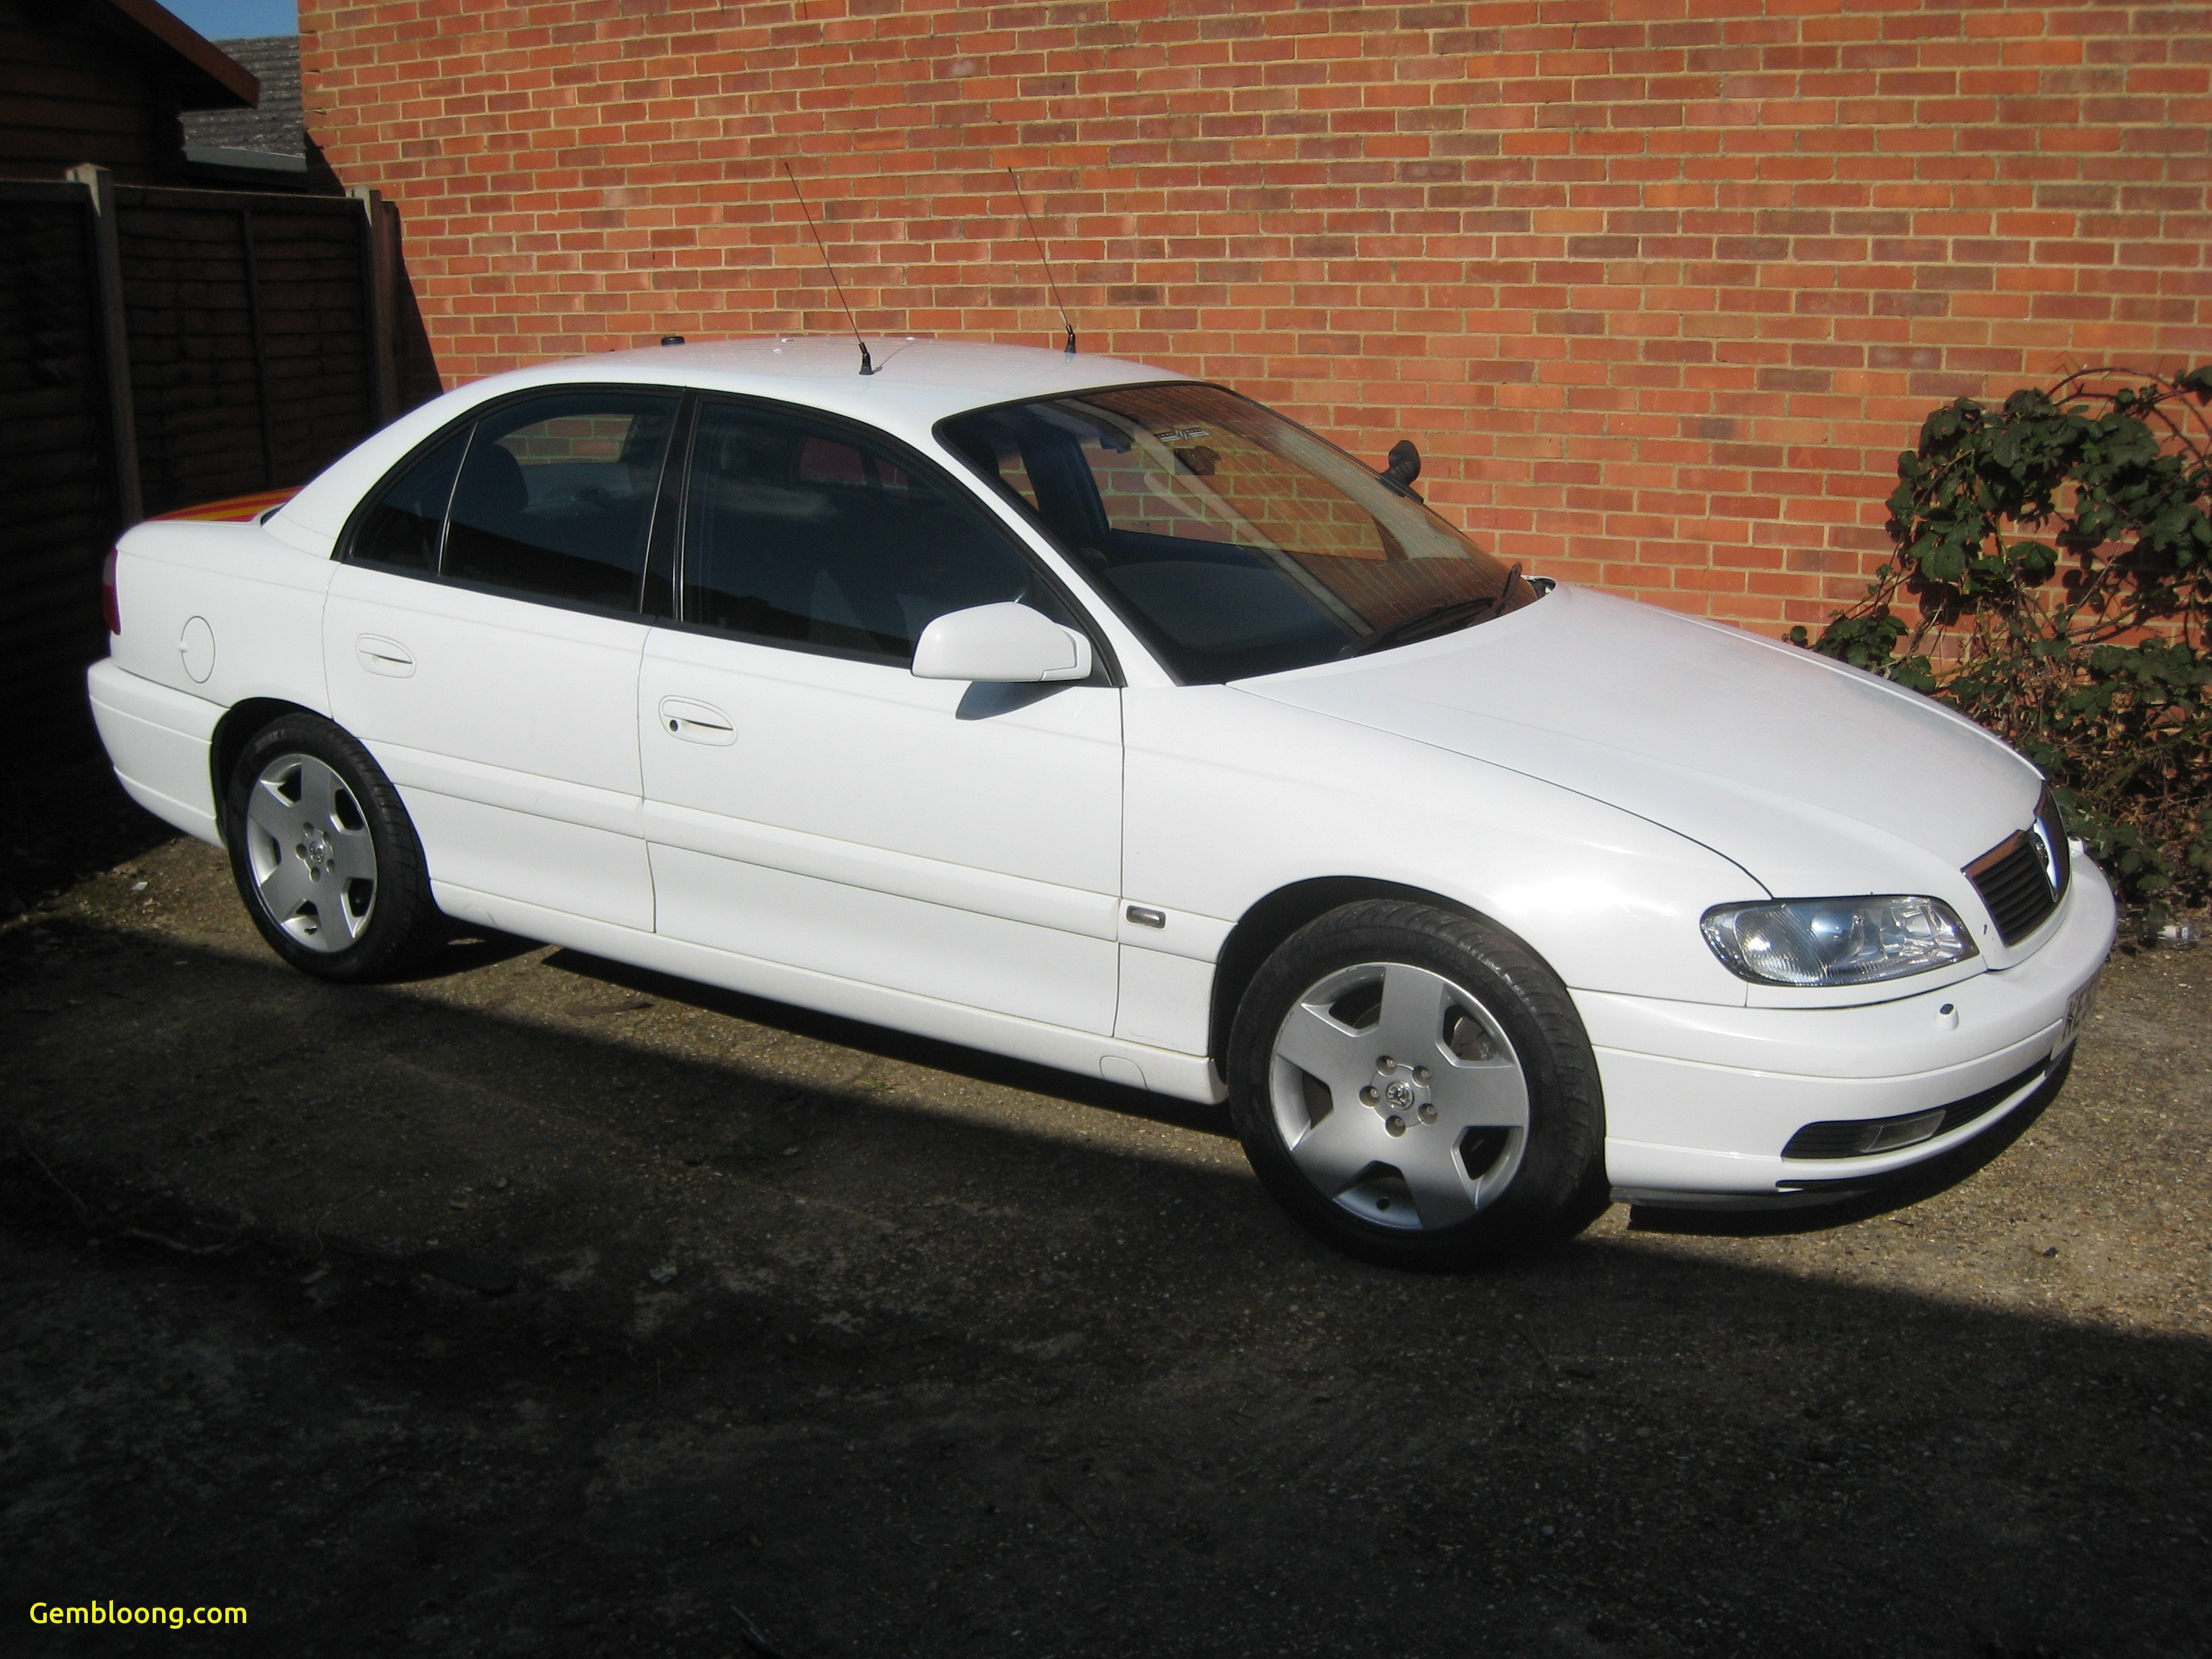 used police cars for sale near me luxury ex police cars good page 2 general gassing